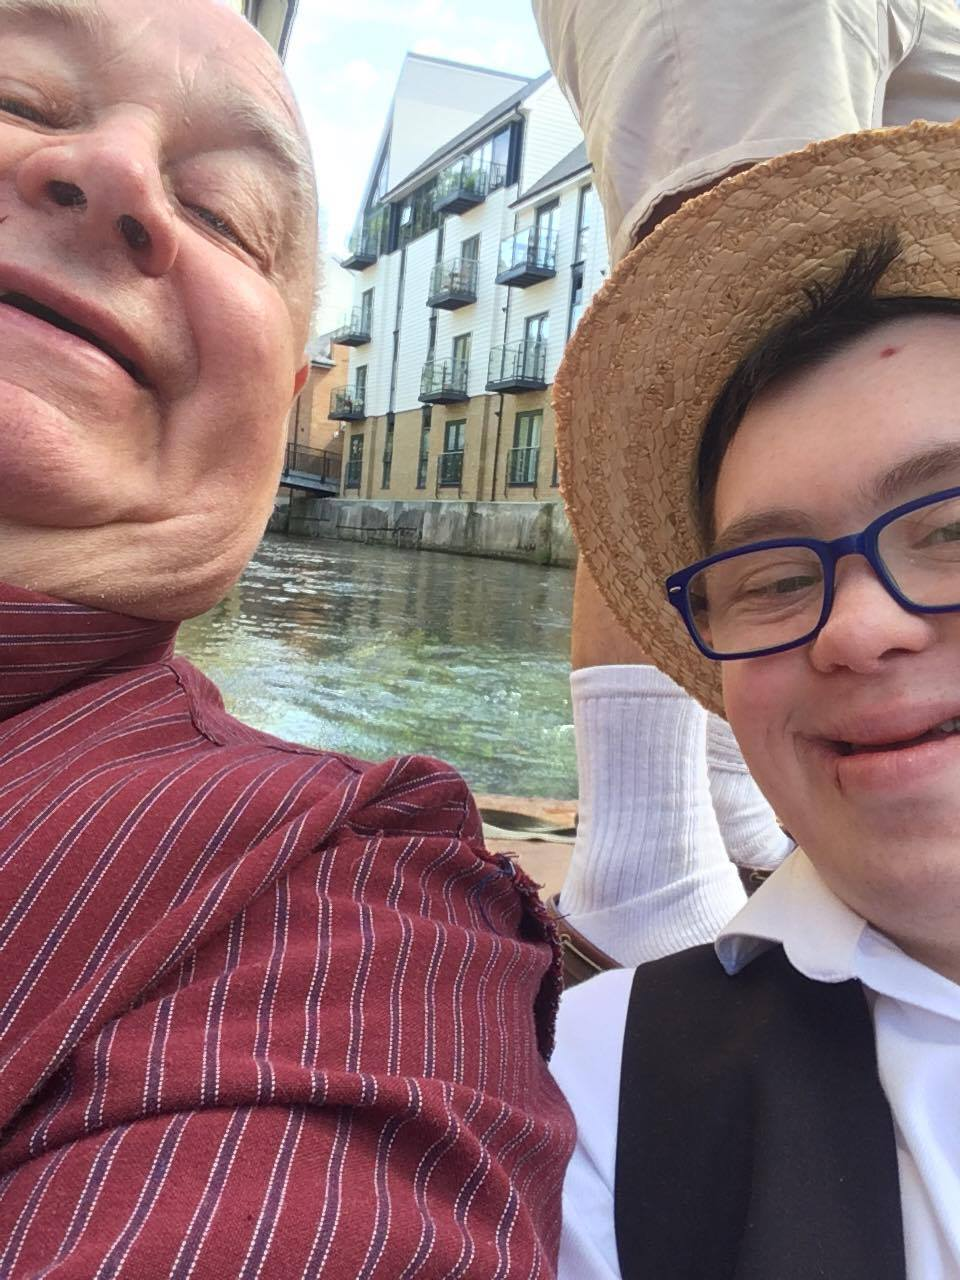 kent wide down syndrome group punting tour was great fun